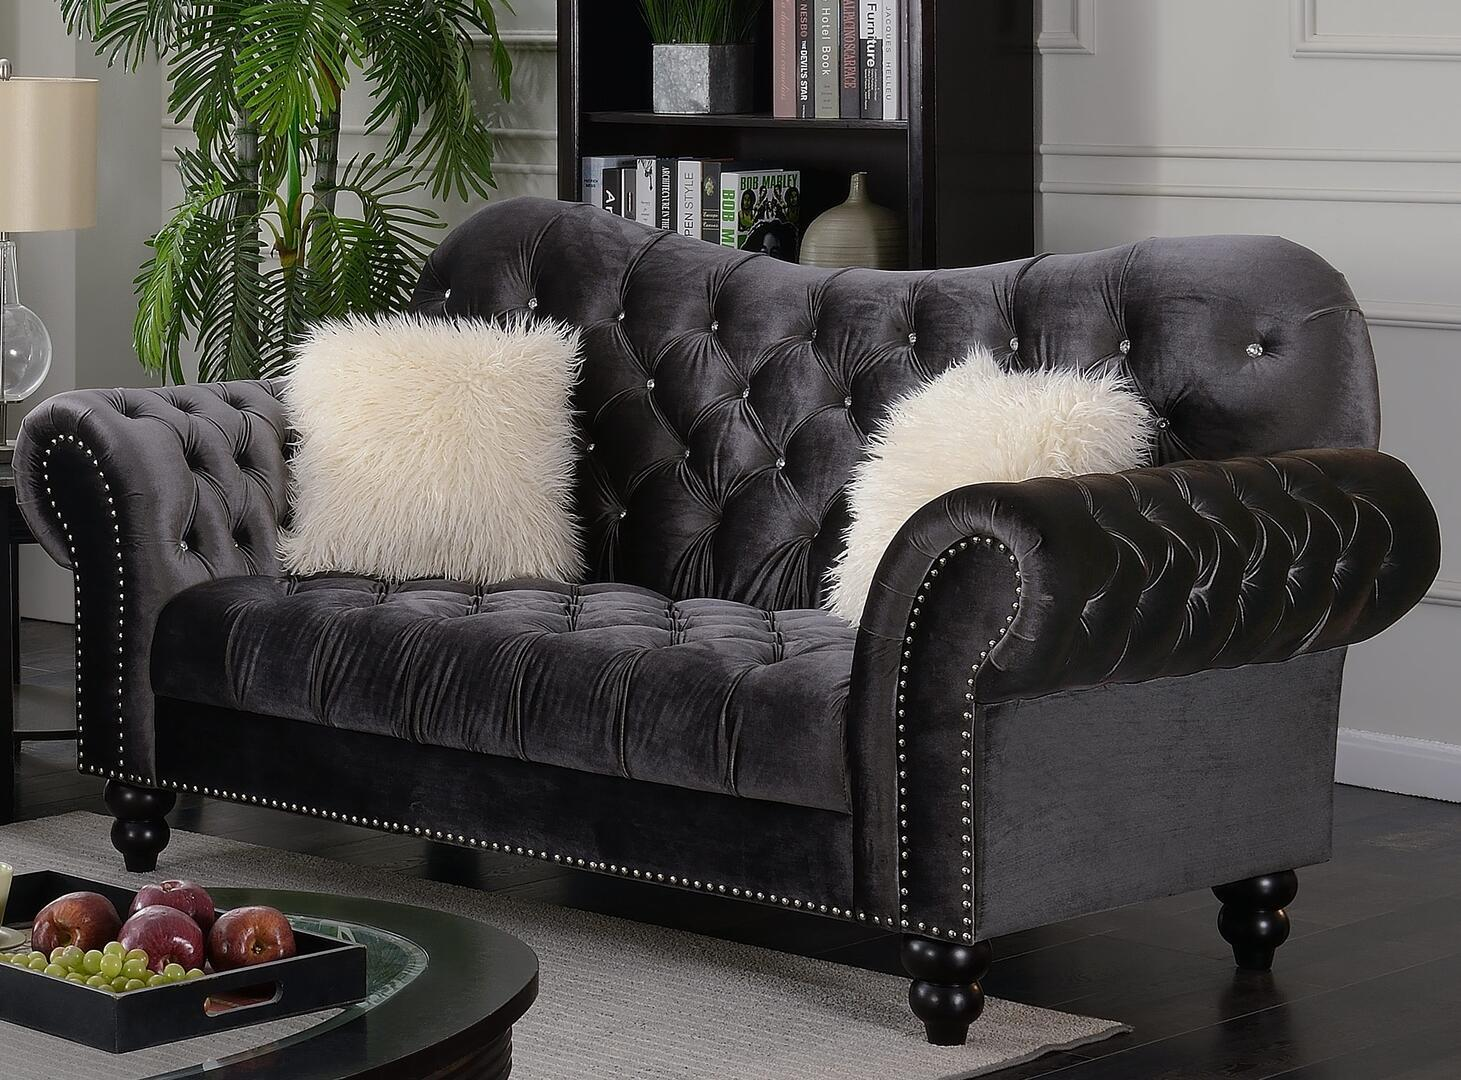 Transitional Gray Fabric Loveseat 1 pcs Cosmos Furniture 3036GYGRA